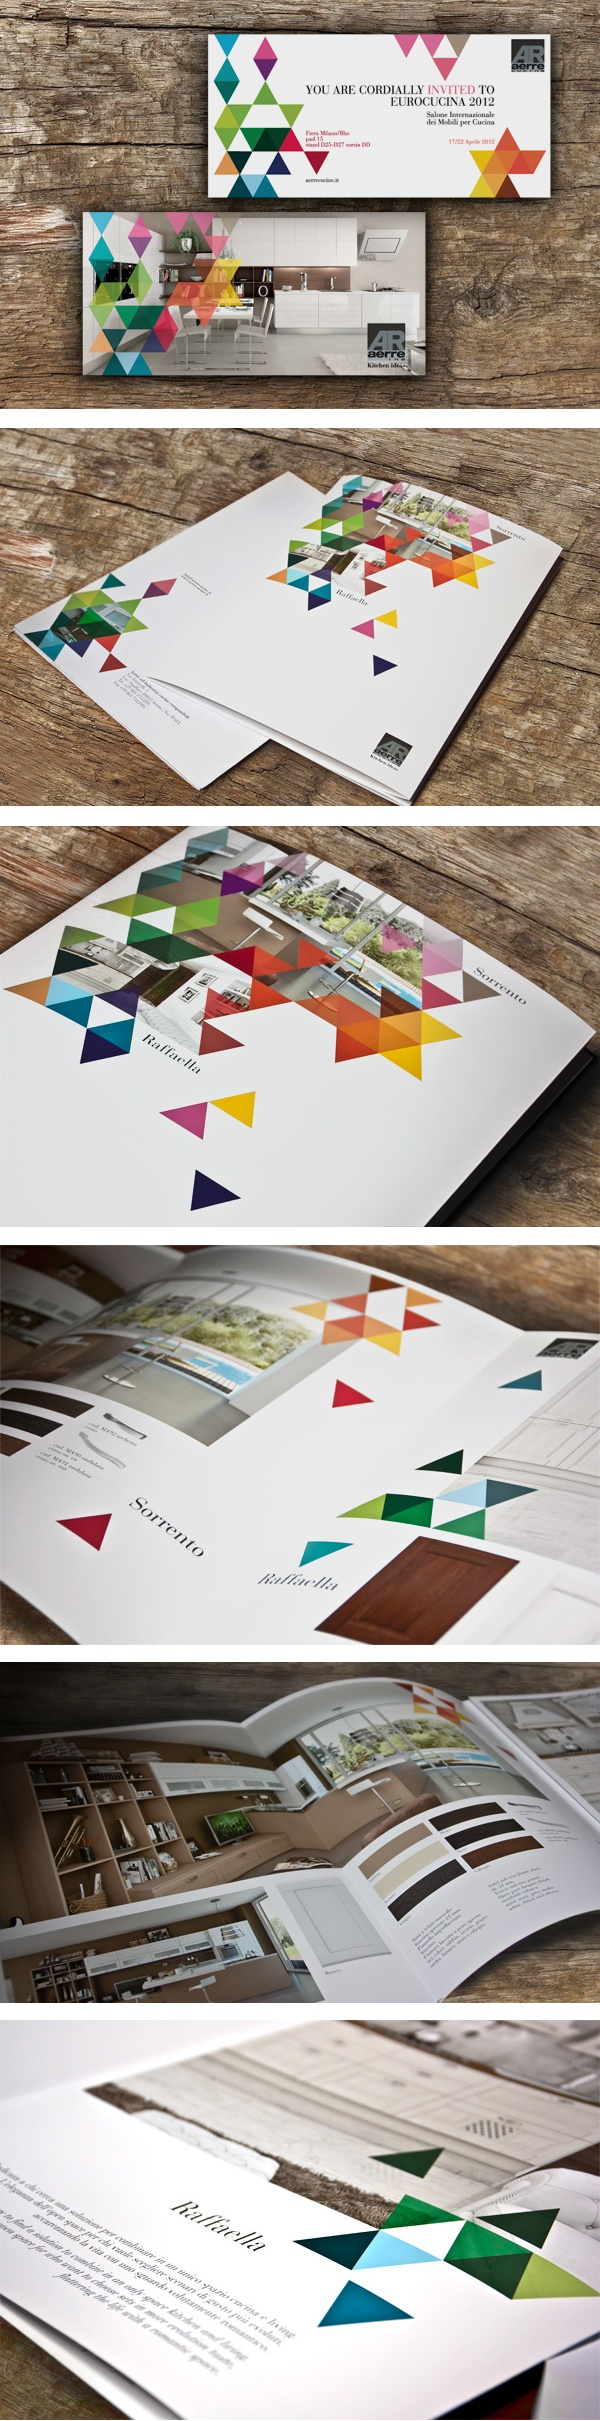 Graphisme triangles